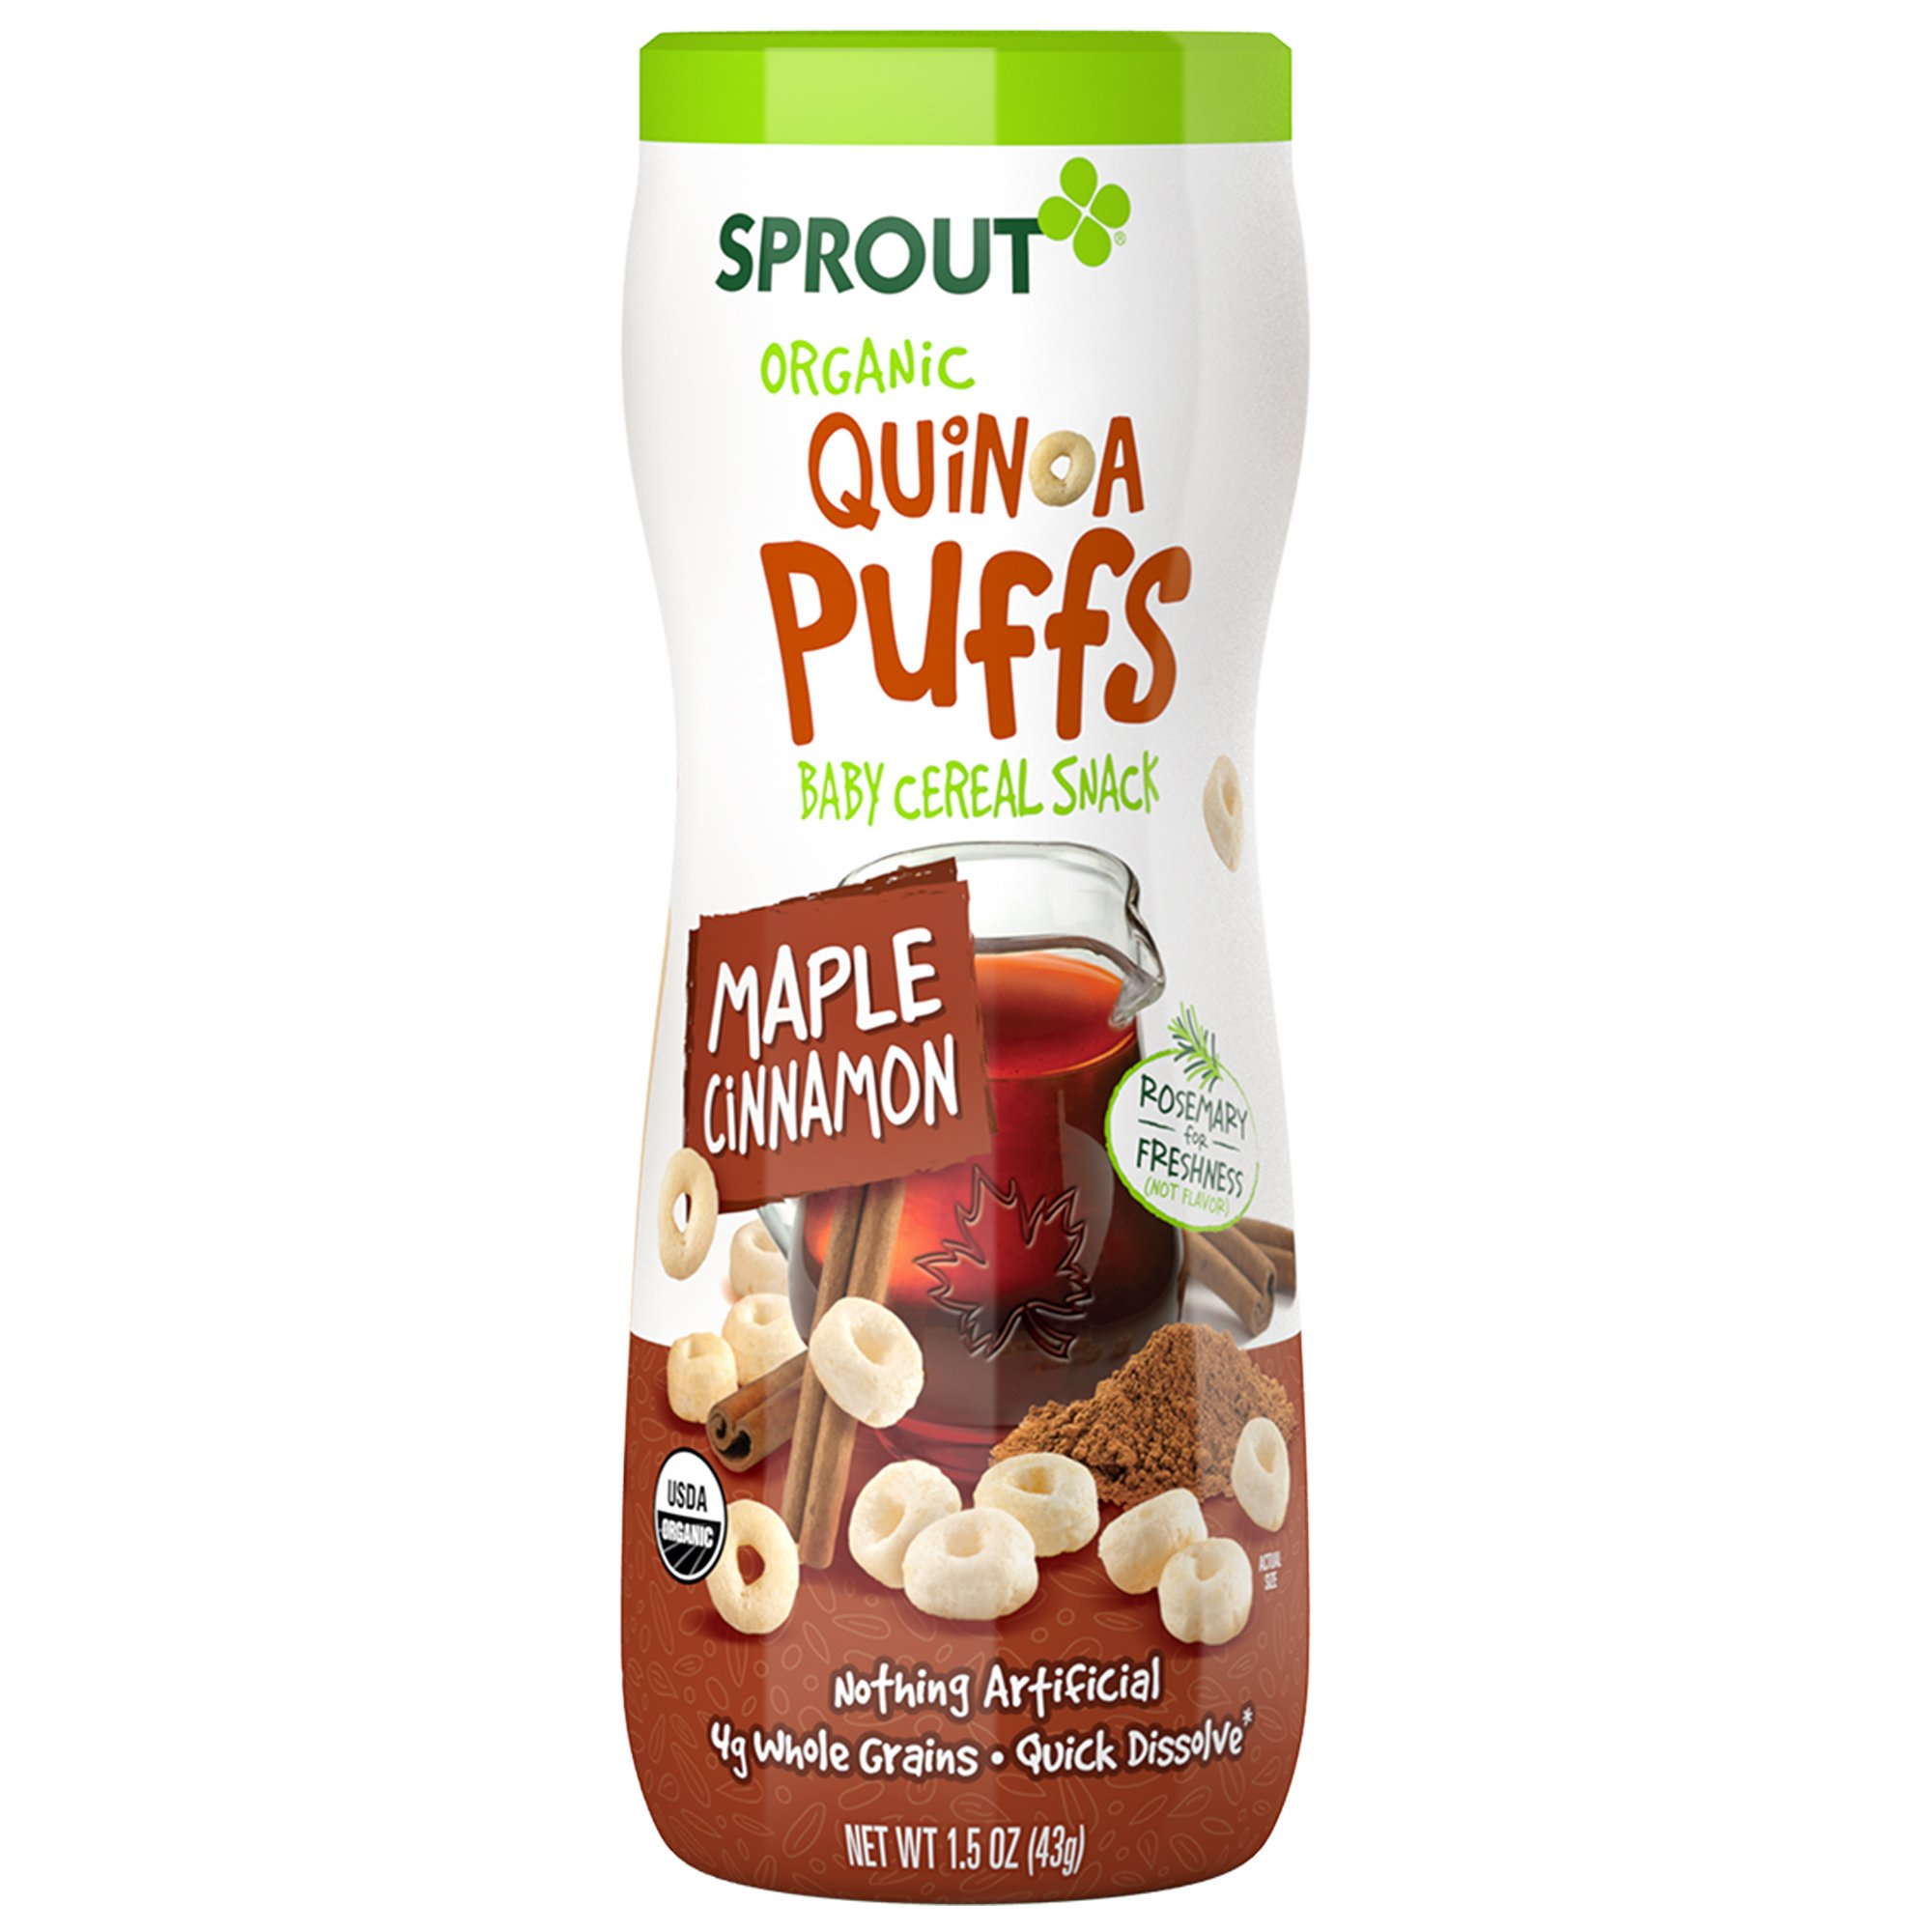 Sprout Organic Baby Food, Sprout Quinoa Puffs Organic Baby Snack, Maple Cinnamon, 1.5 Ounce Canister (Pack of 1), Baby's First Snack, Quick Dissolve, Gluten Free, Made with Whole Grains, USDA Organic